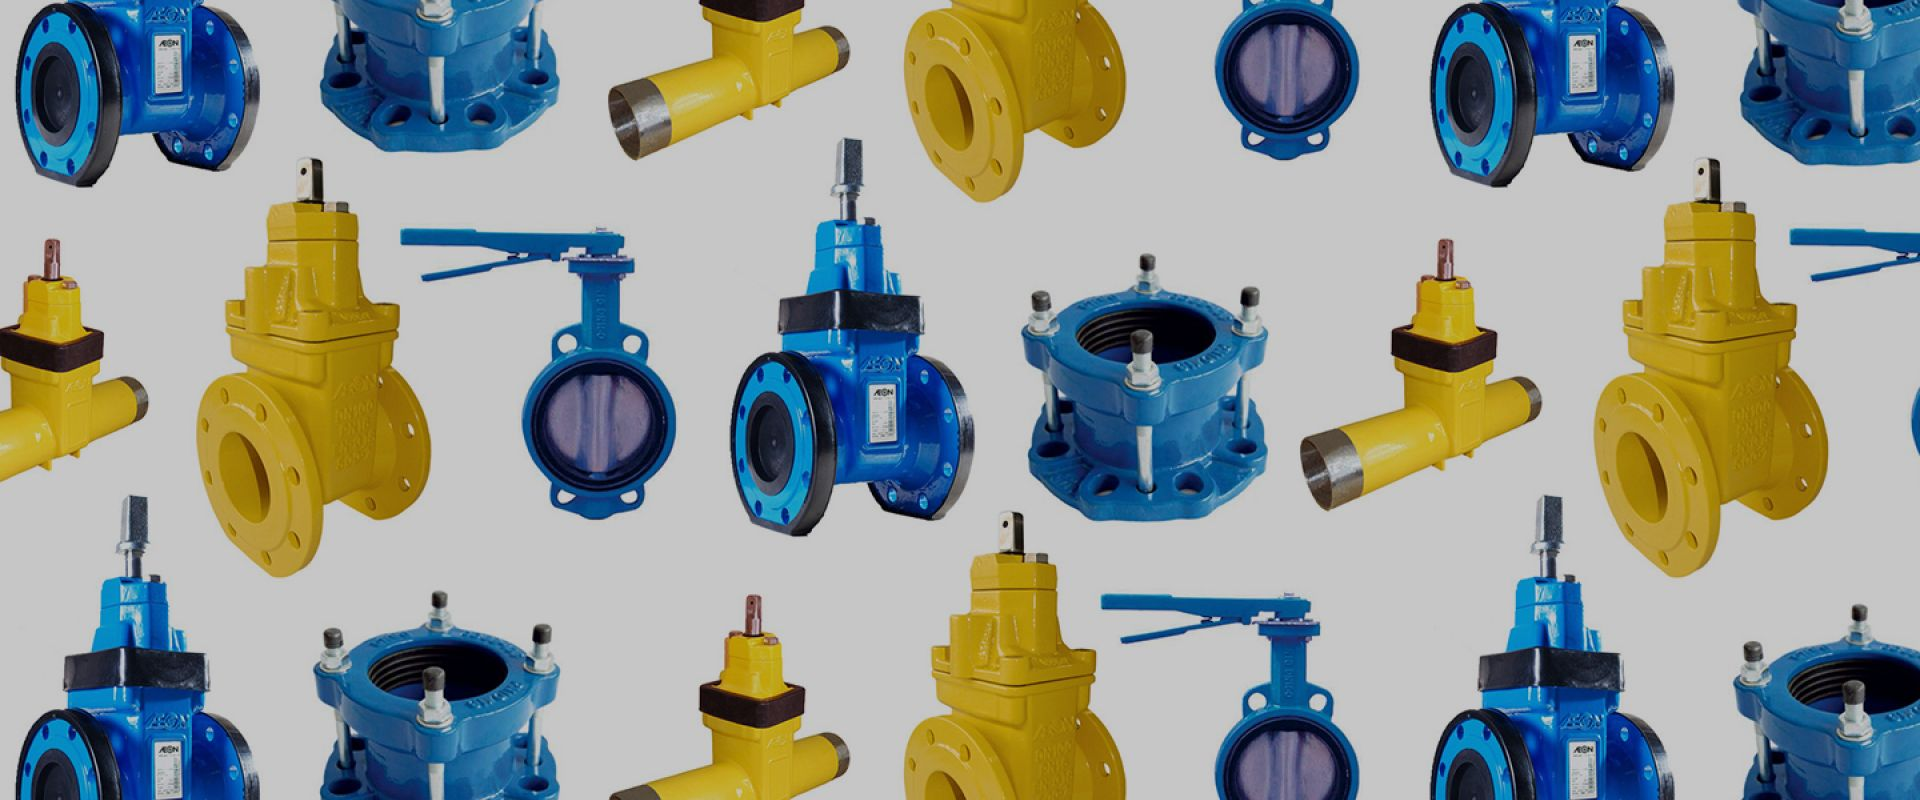 Patented valve technology for all pipeline networks